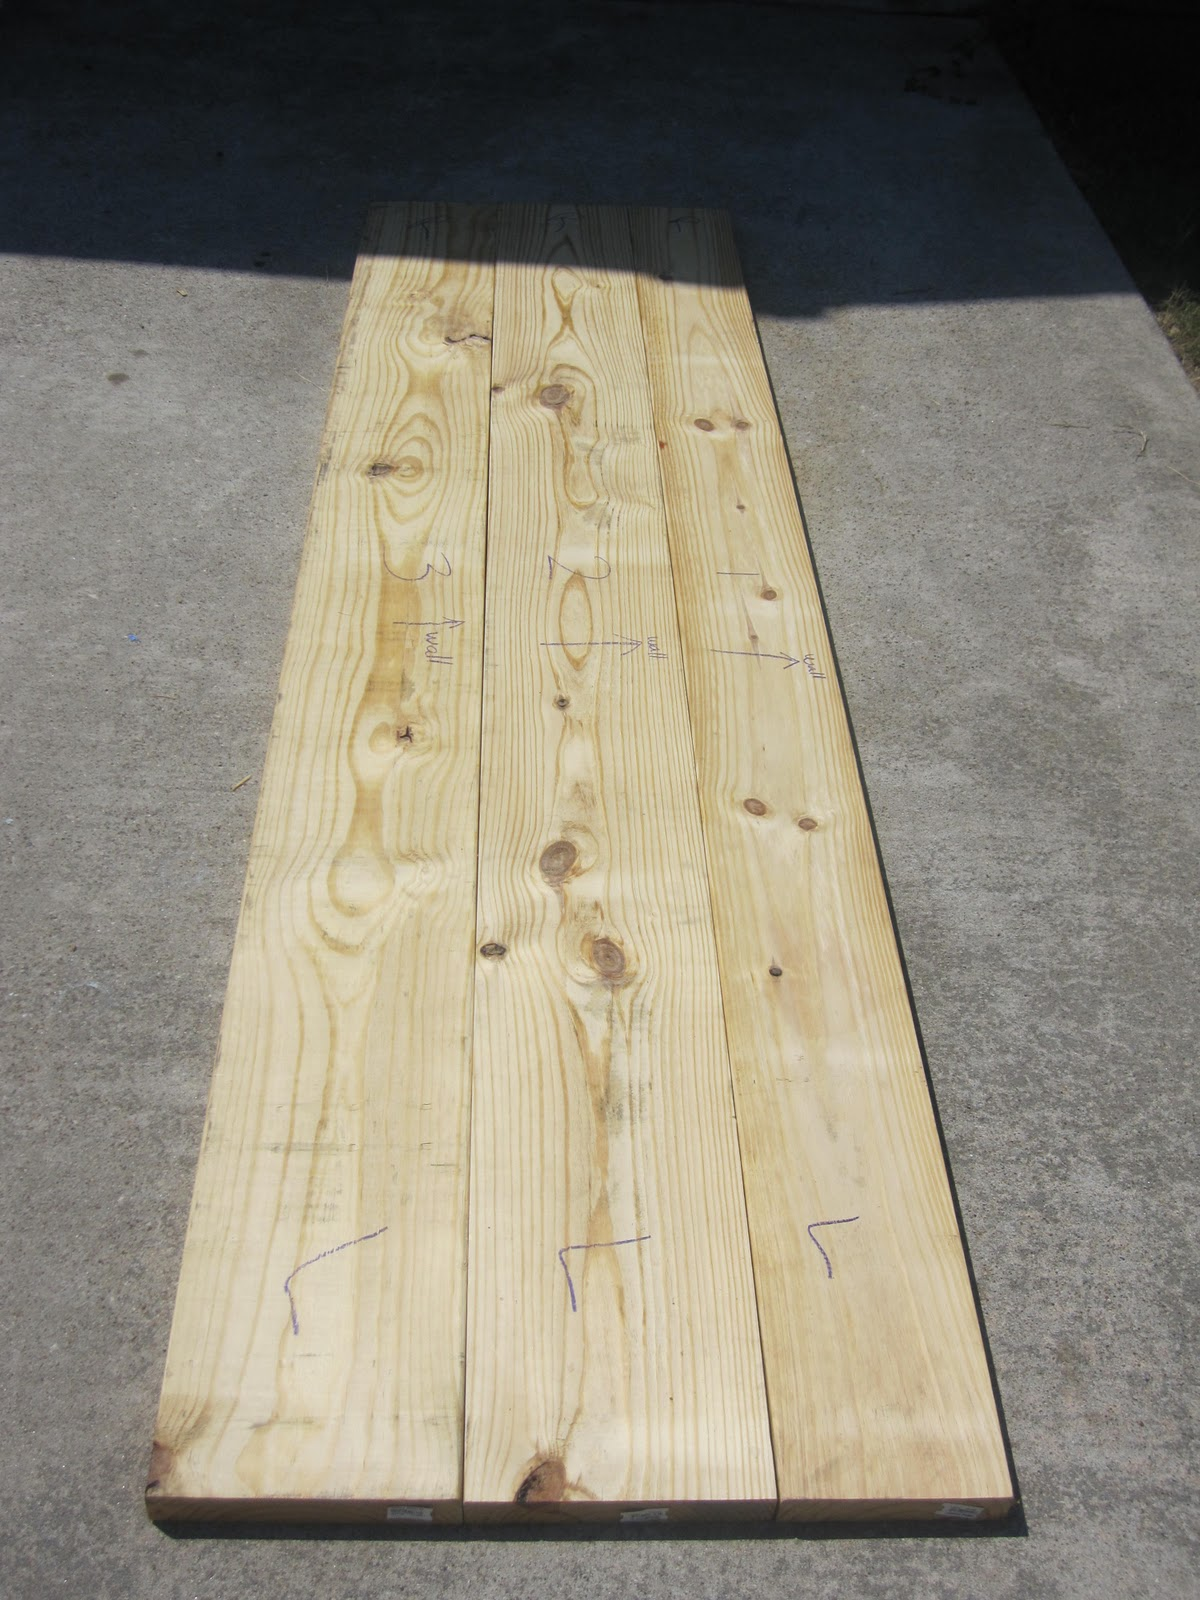 Arrange Wood Planks - How to Install Faux Butcher Block Countertops